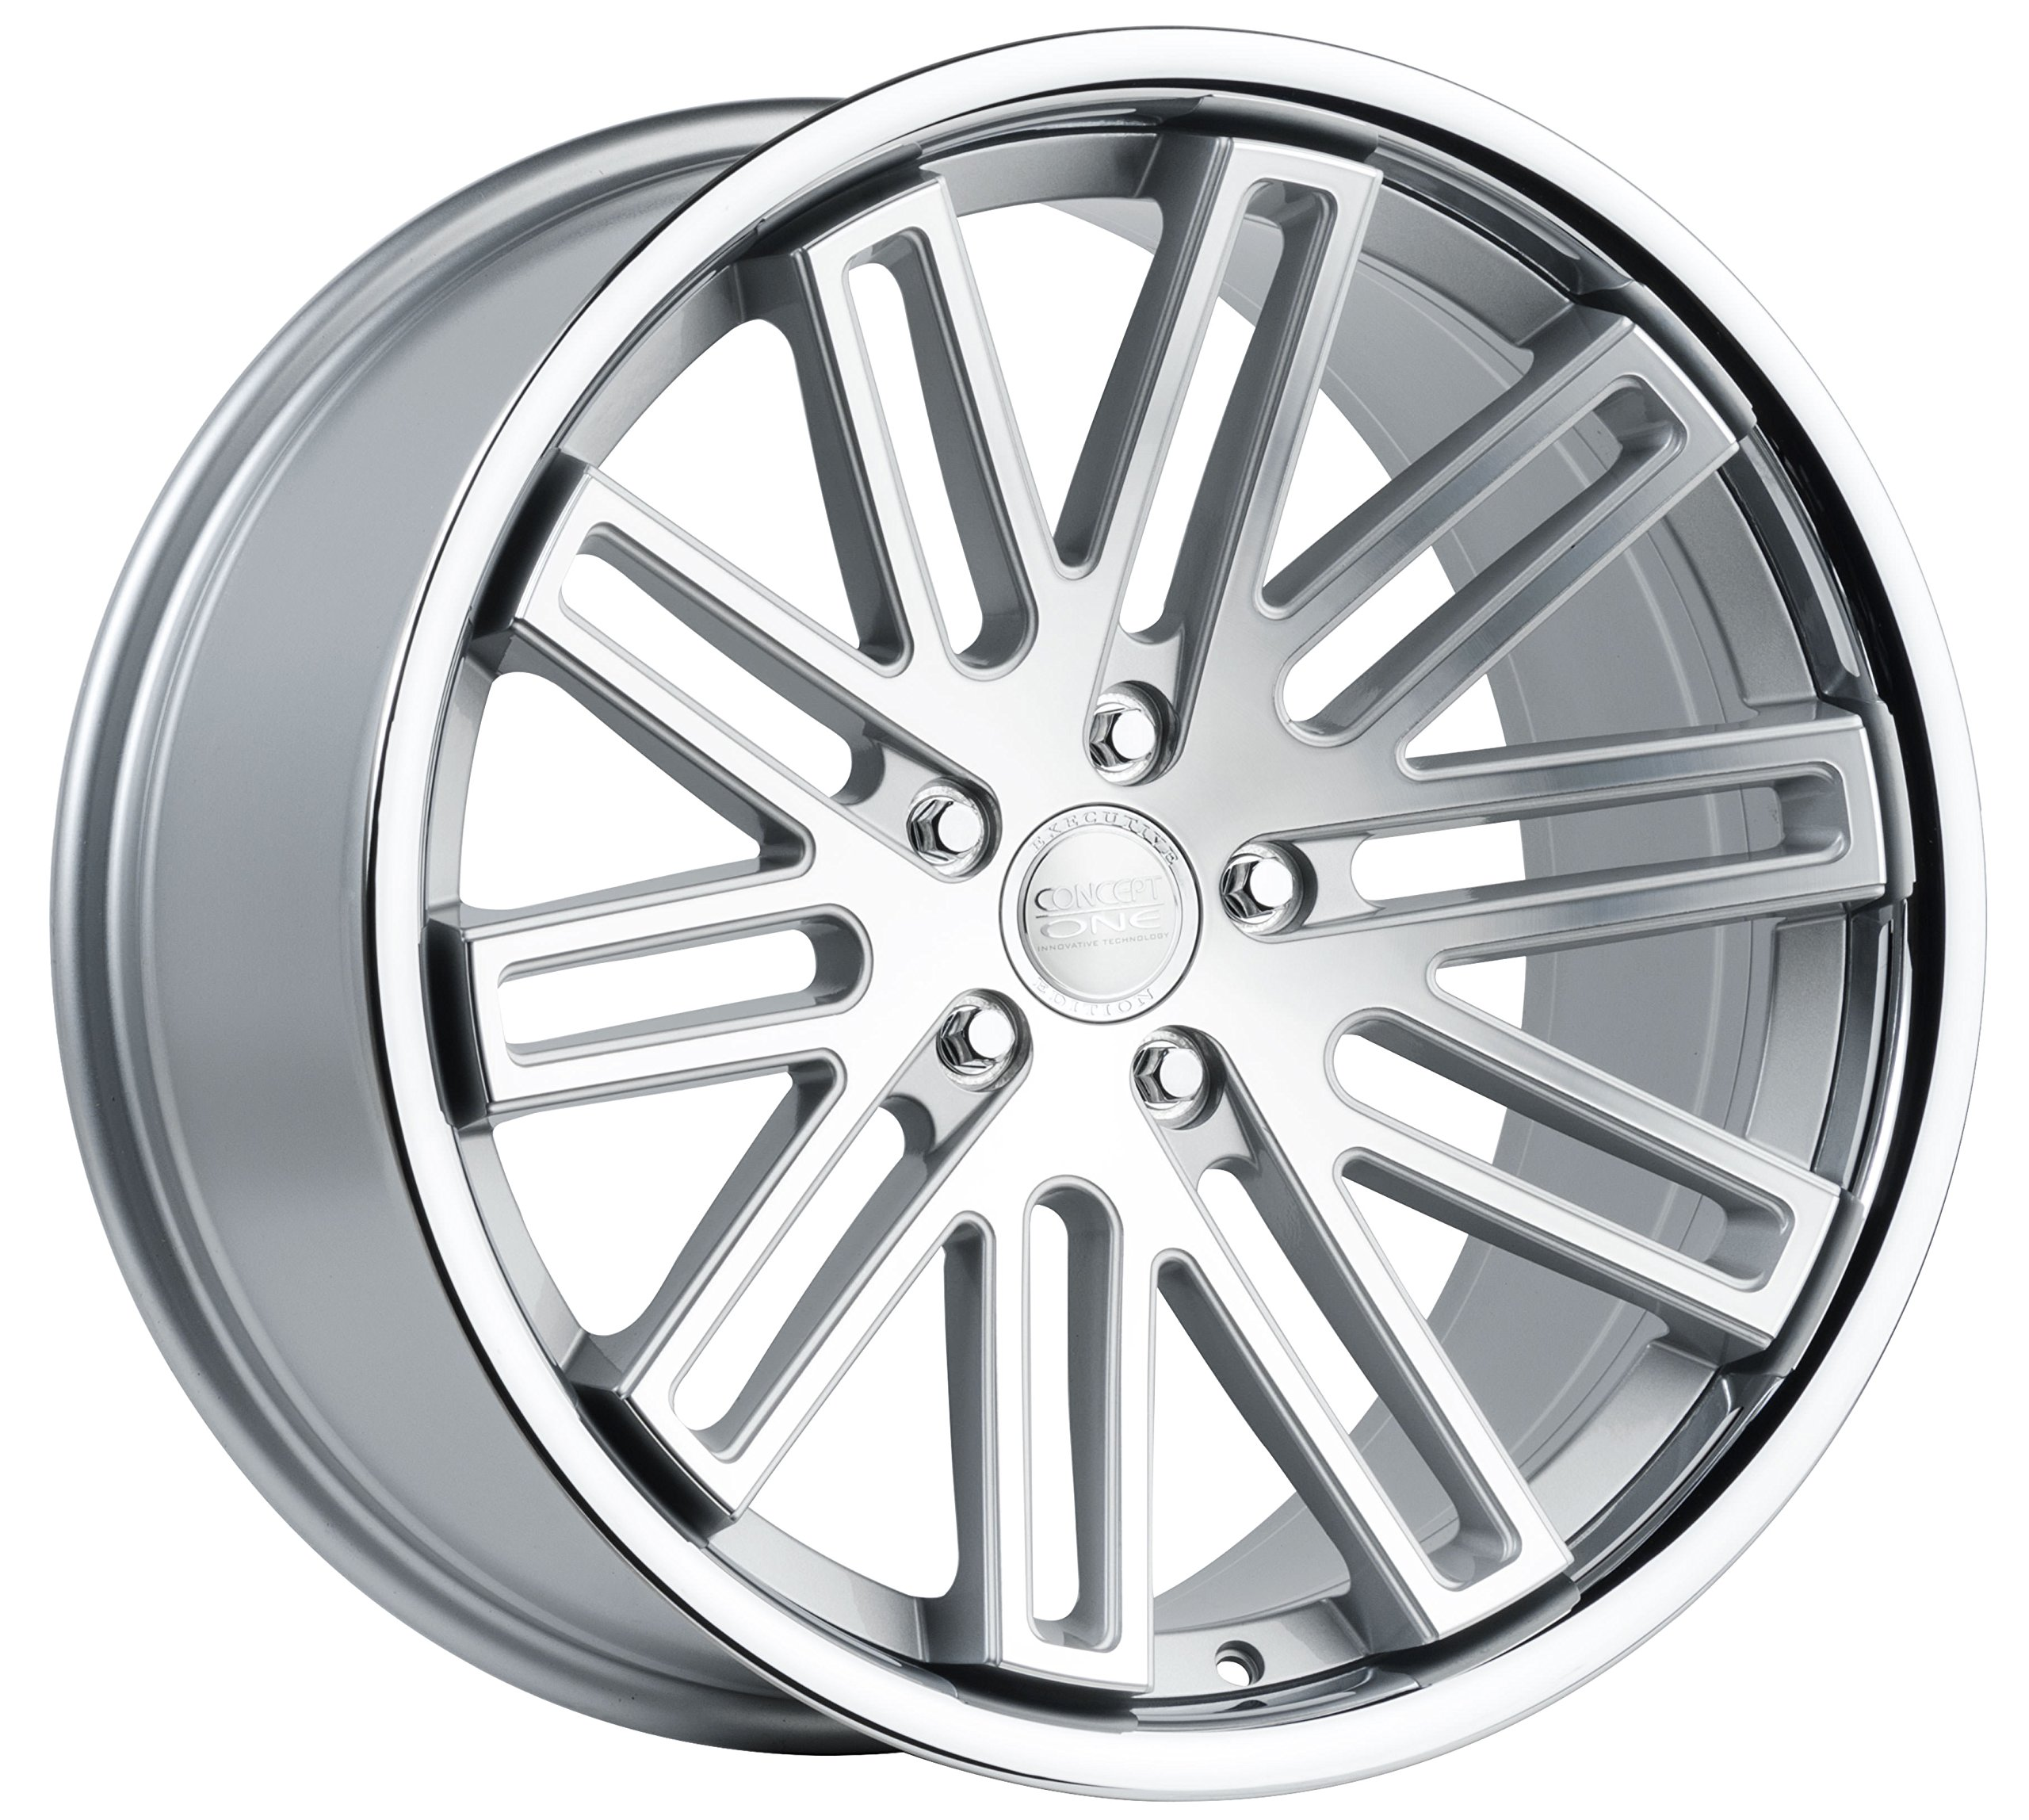 Concept-One-CS-20-Silver-Machined-Wheel-with-Painted-Finish-x-105-inches-5-x-114-mm-45-mm-Offset